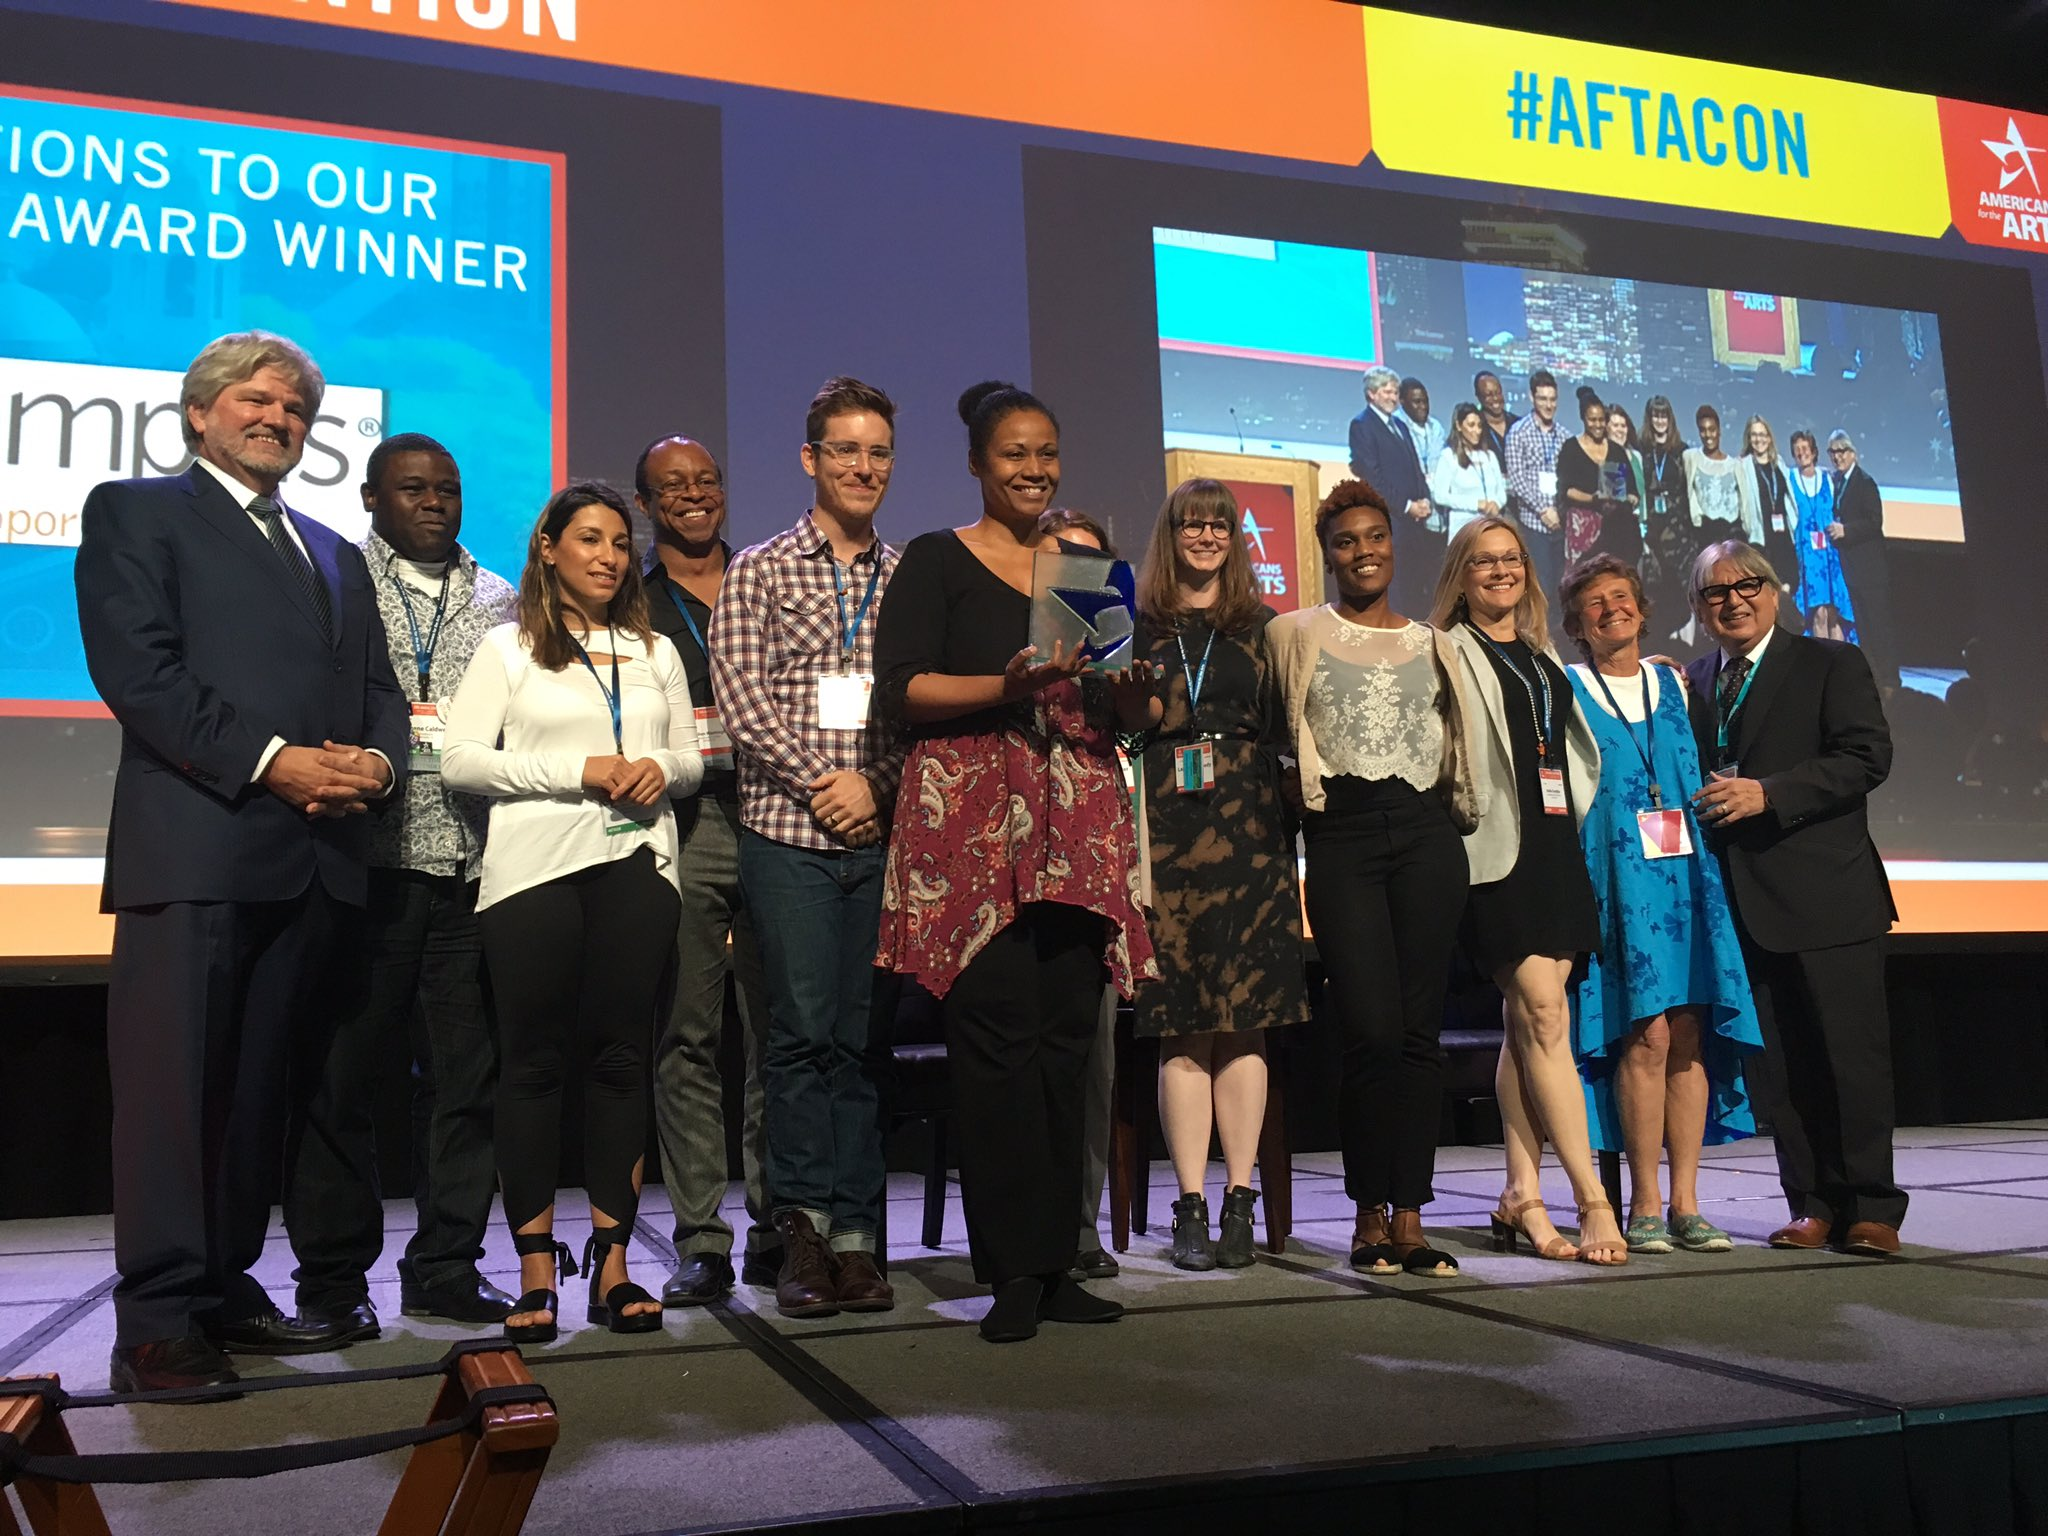 .@artsmemphis wins Gard award for their community fellows program for using the arts to drive change #aftacon https://t.co/KymYNQ2Kbj